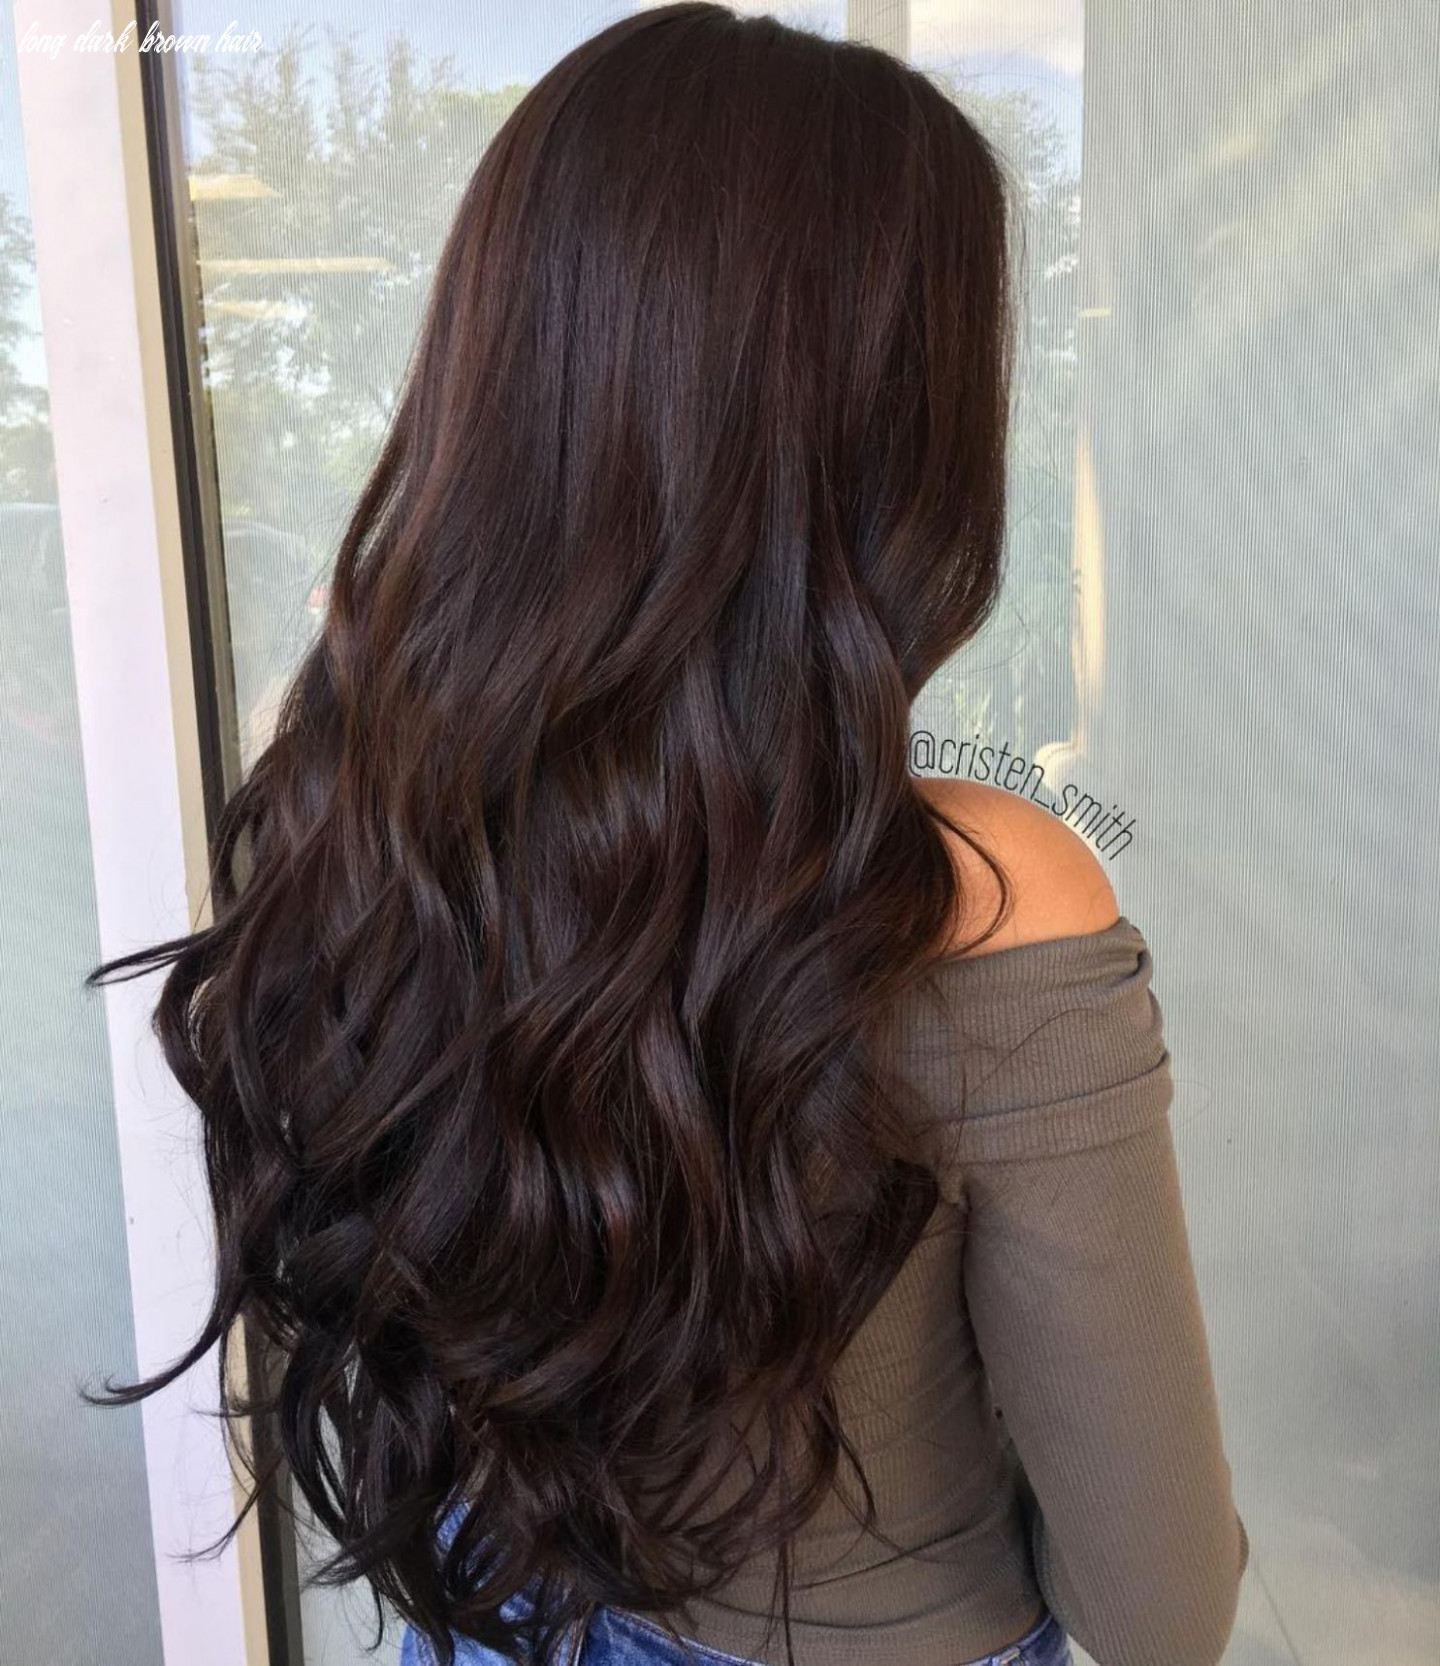 10 chocolate brown hair color ideas for brunettes | curly hair